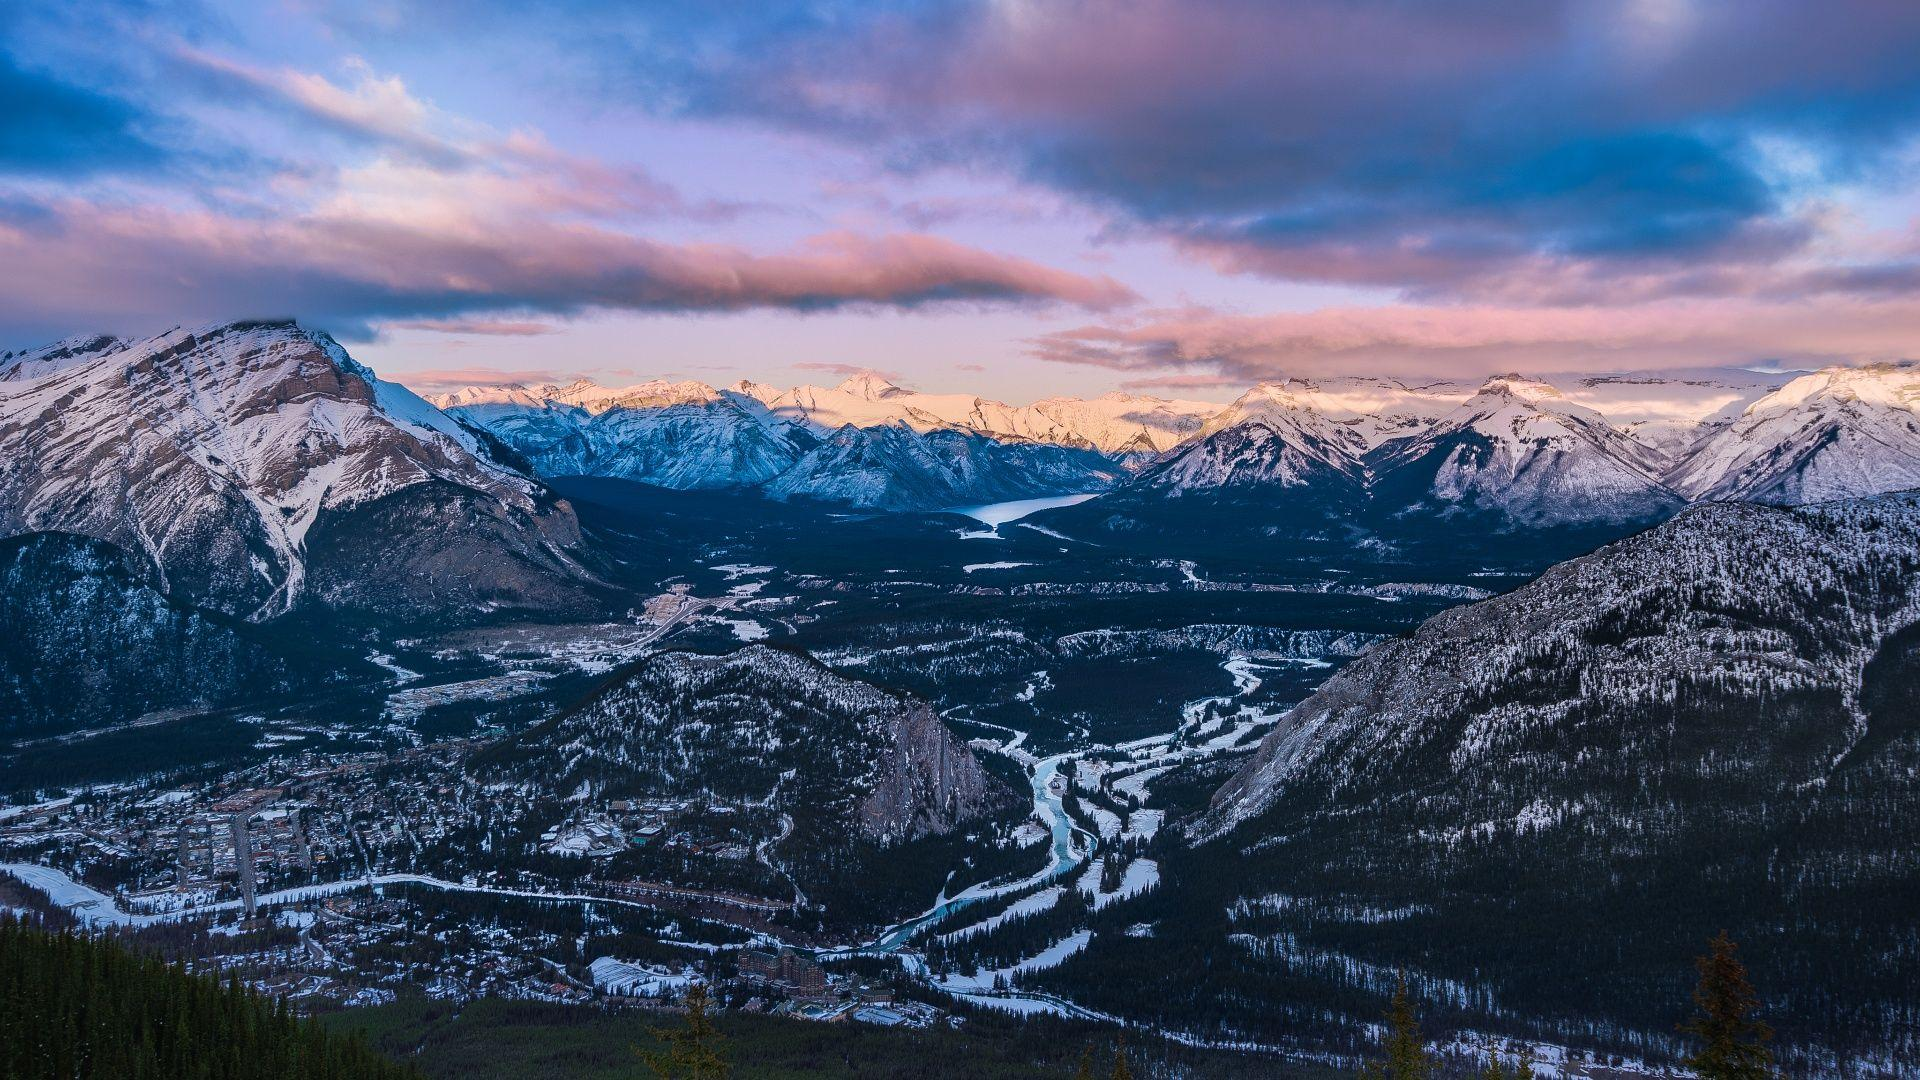 Sunset Sulphur Mountain Banff National Park Wallpapers in jpg ...